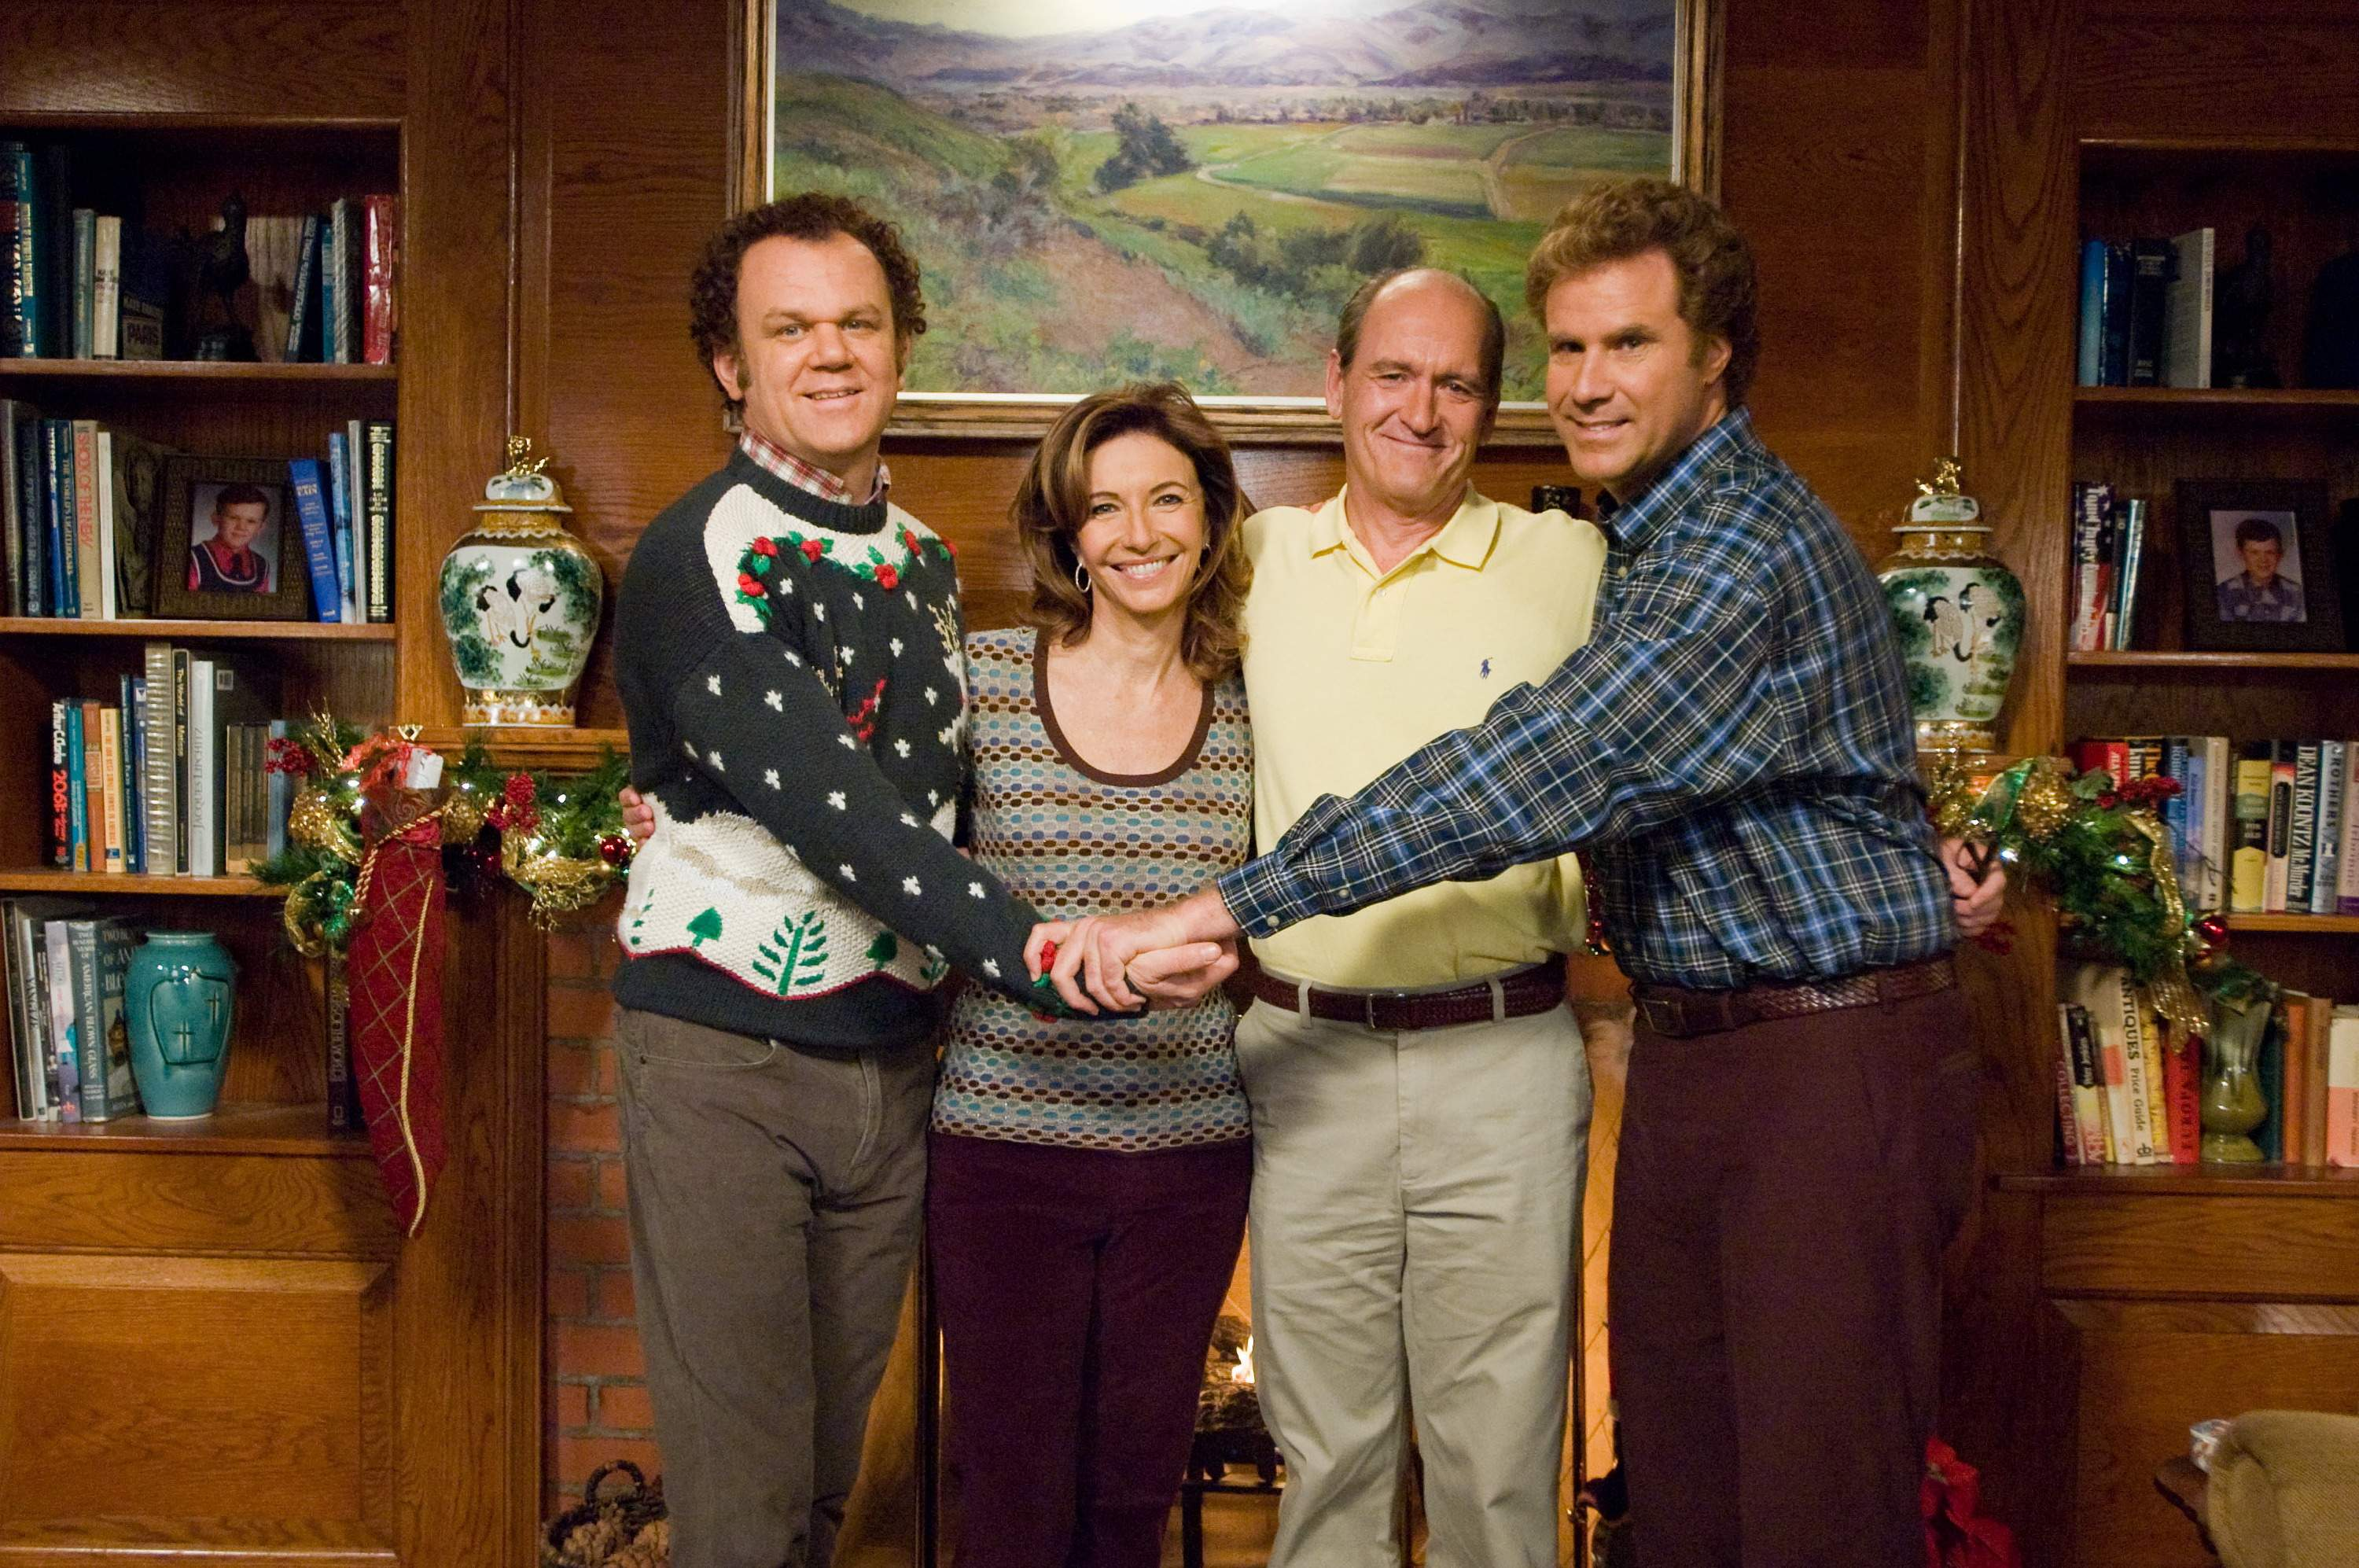 The faux millennials living at home in the movie Stepbrothers